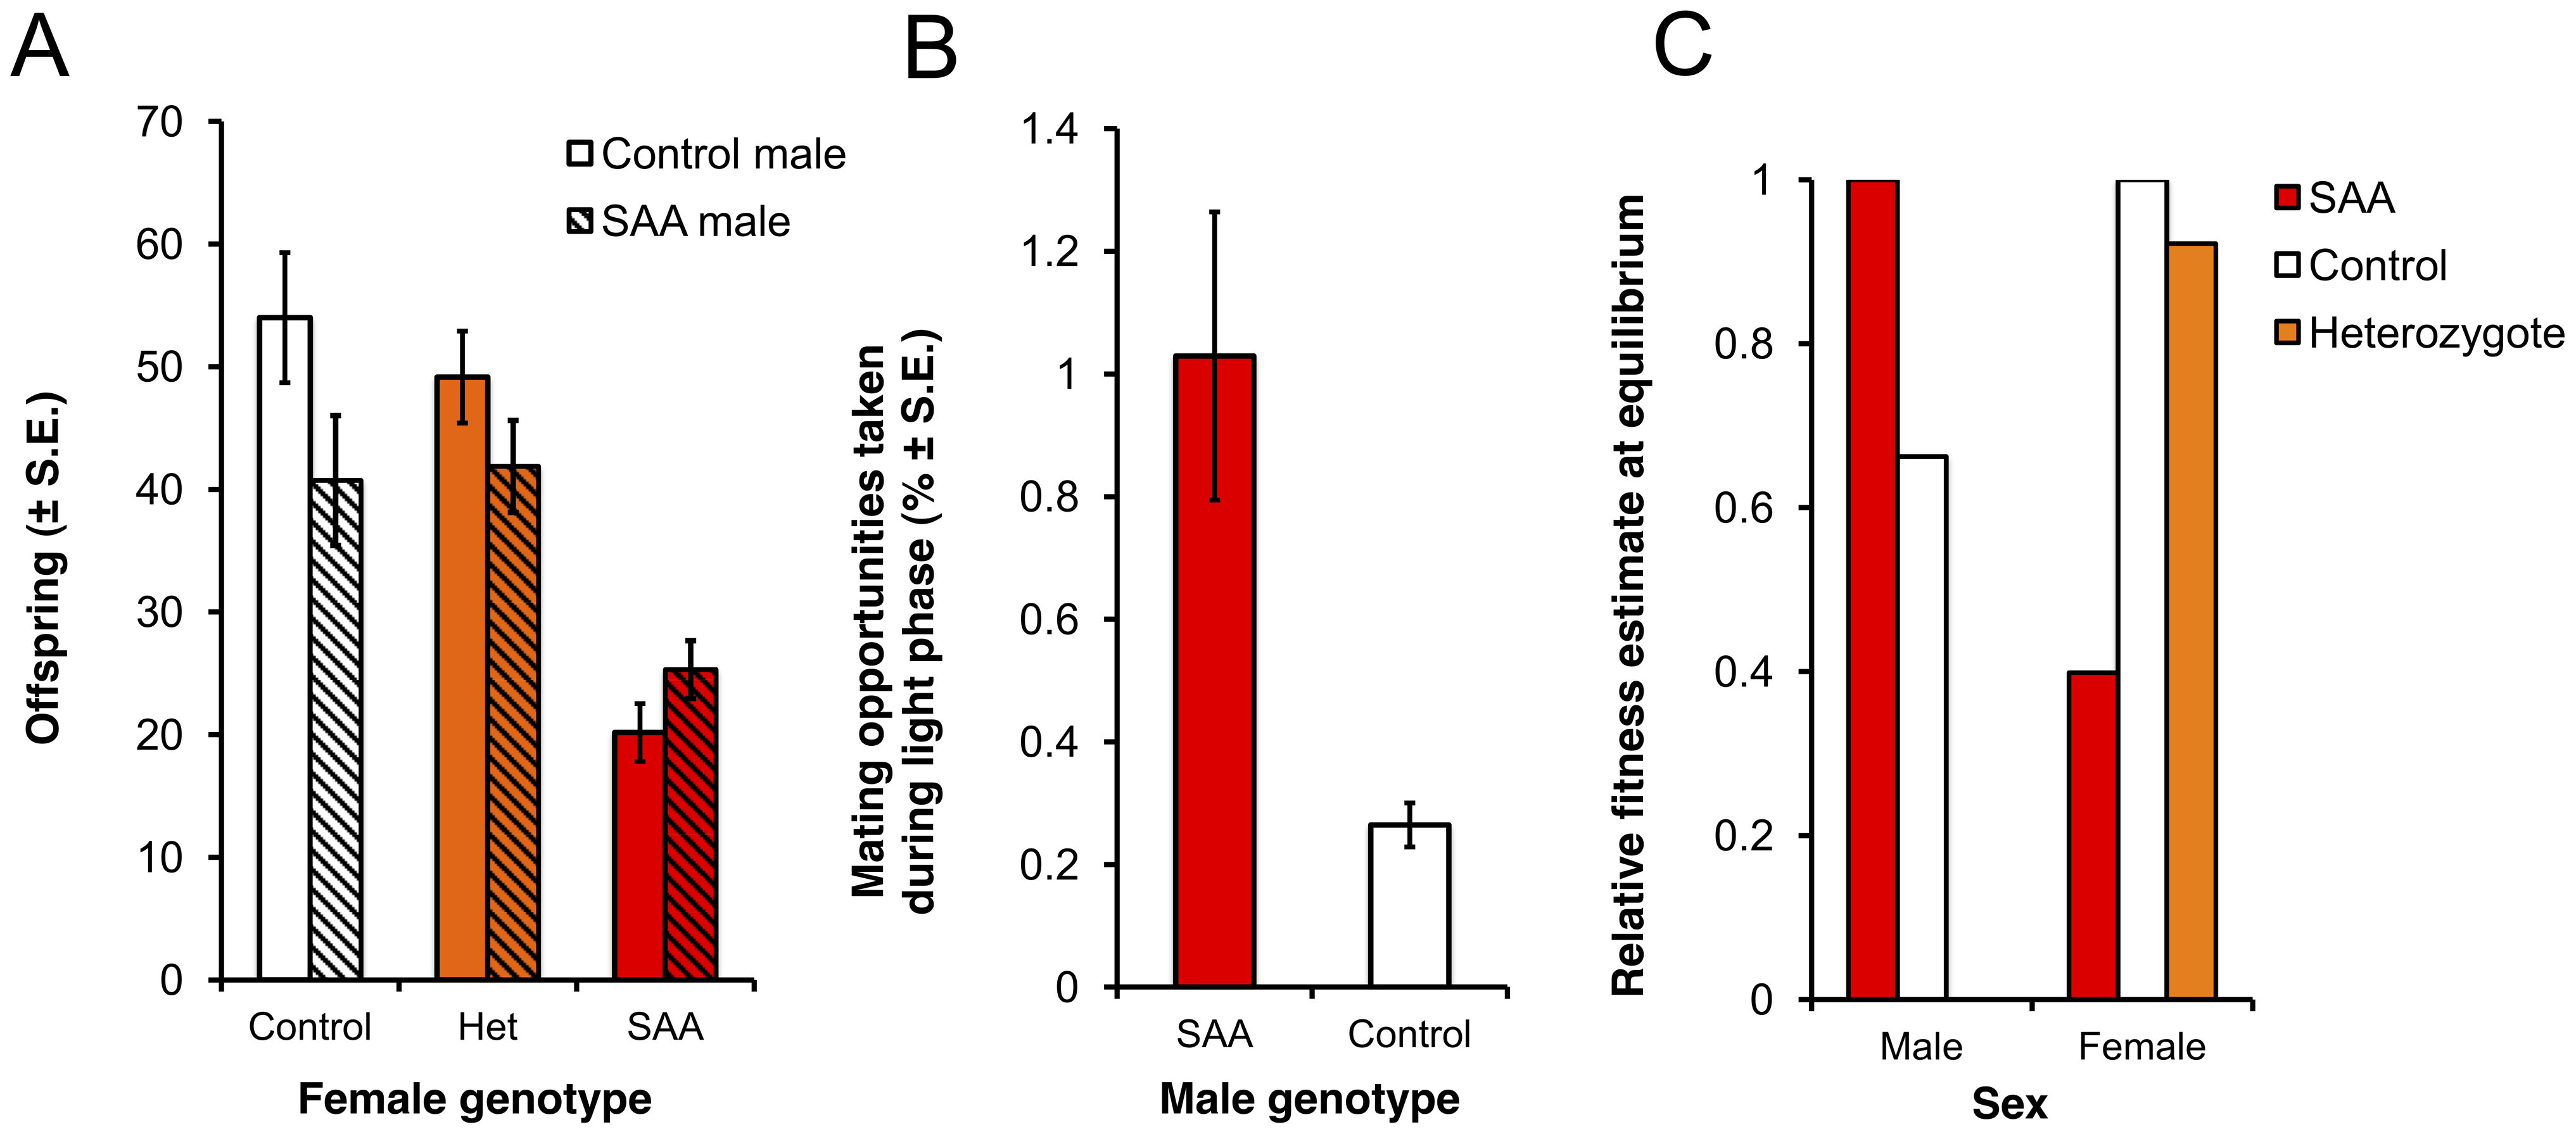 Reproductive success of male and female genotypes.